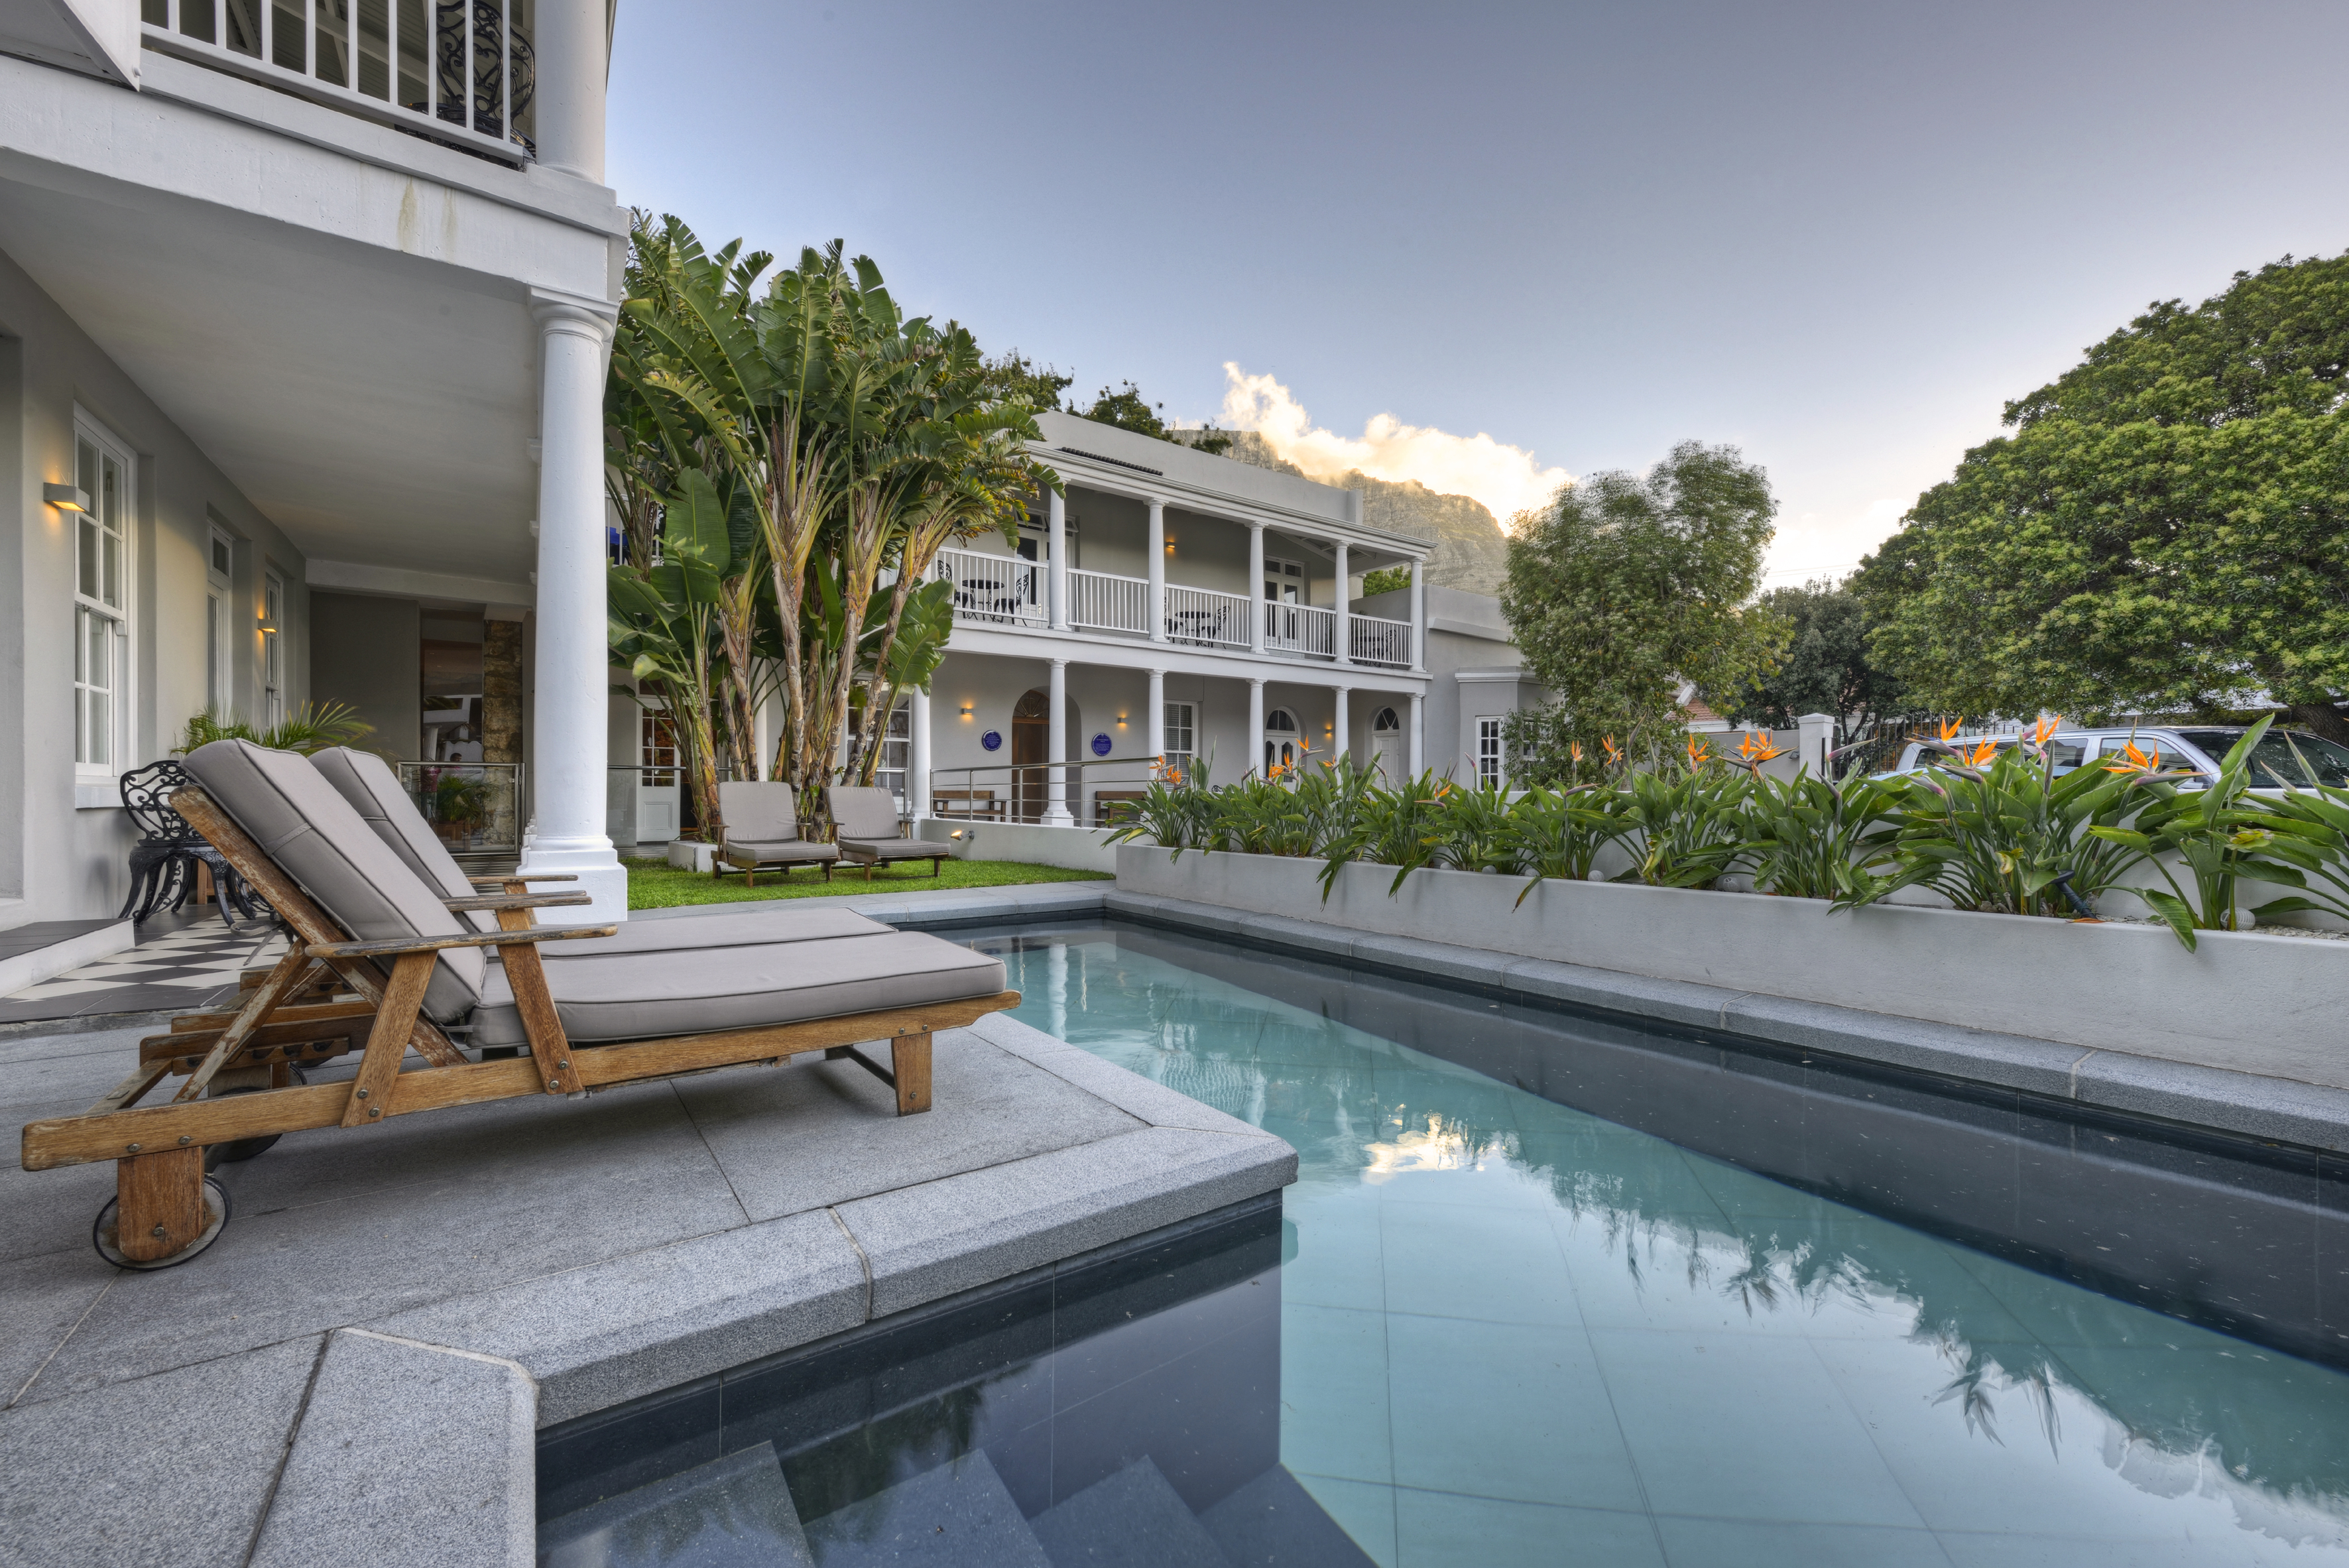 Swimming pool and courtyard at The Three Boutique Hotel, Gardens district of Cape Town (hi-res JPG)